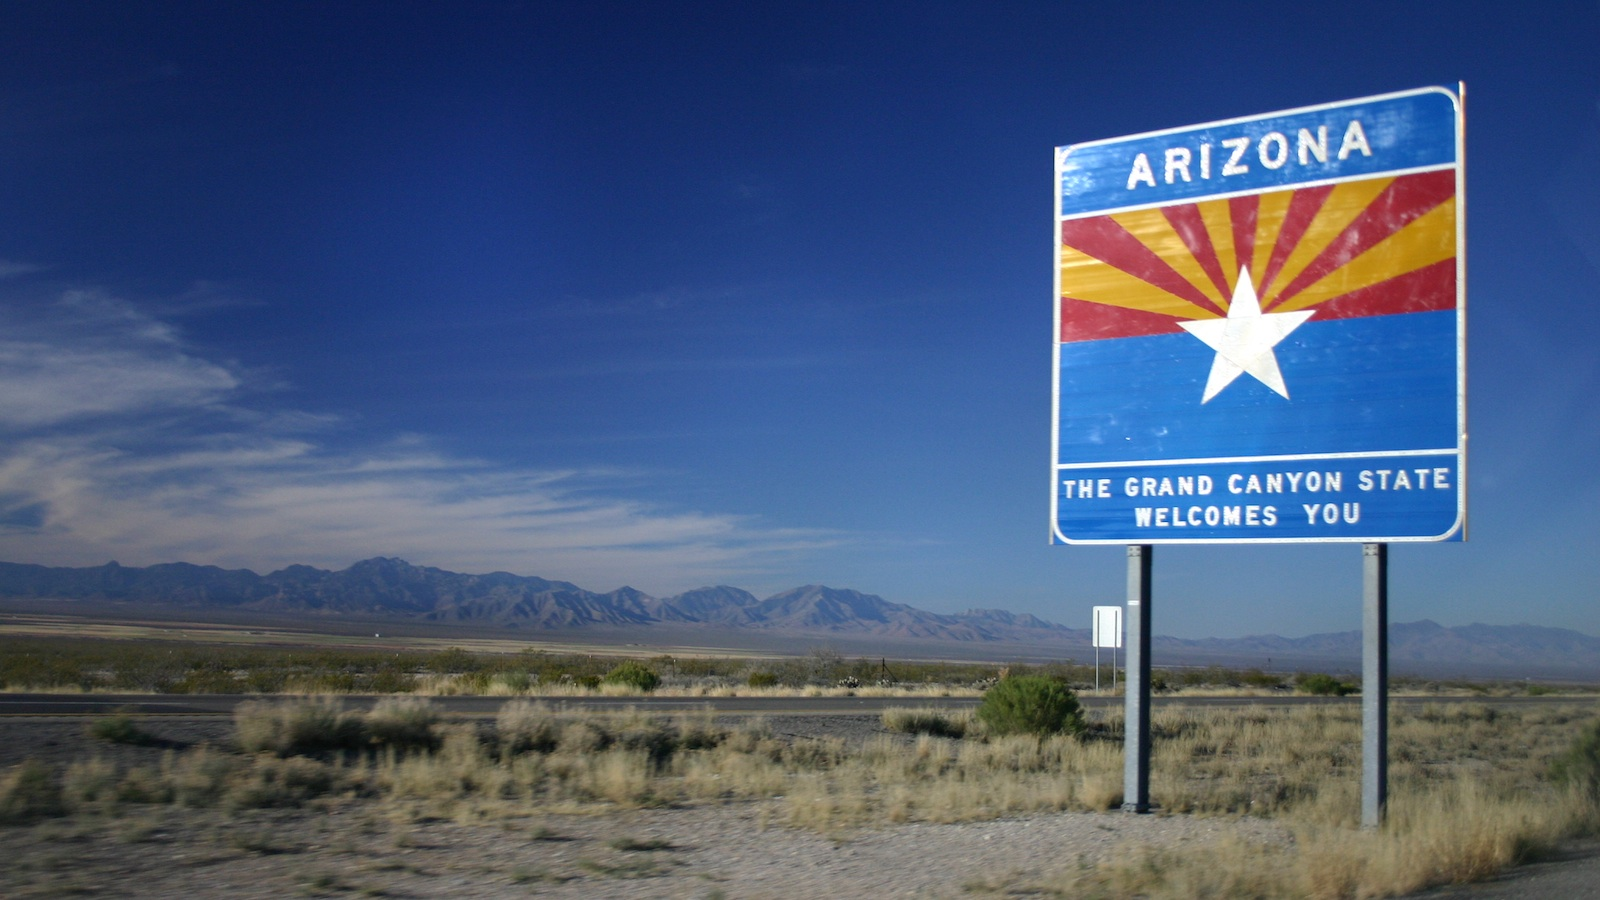 No gerrymandering on the horizon in the Grand Canyon State.